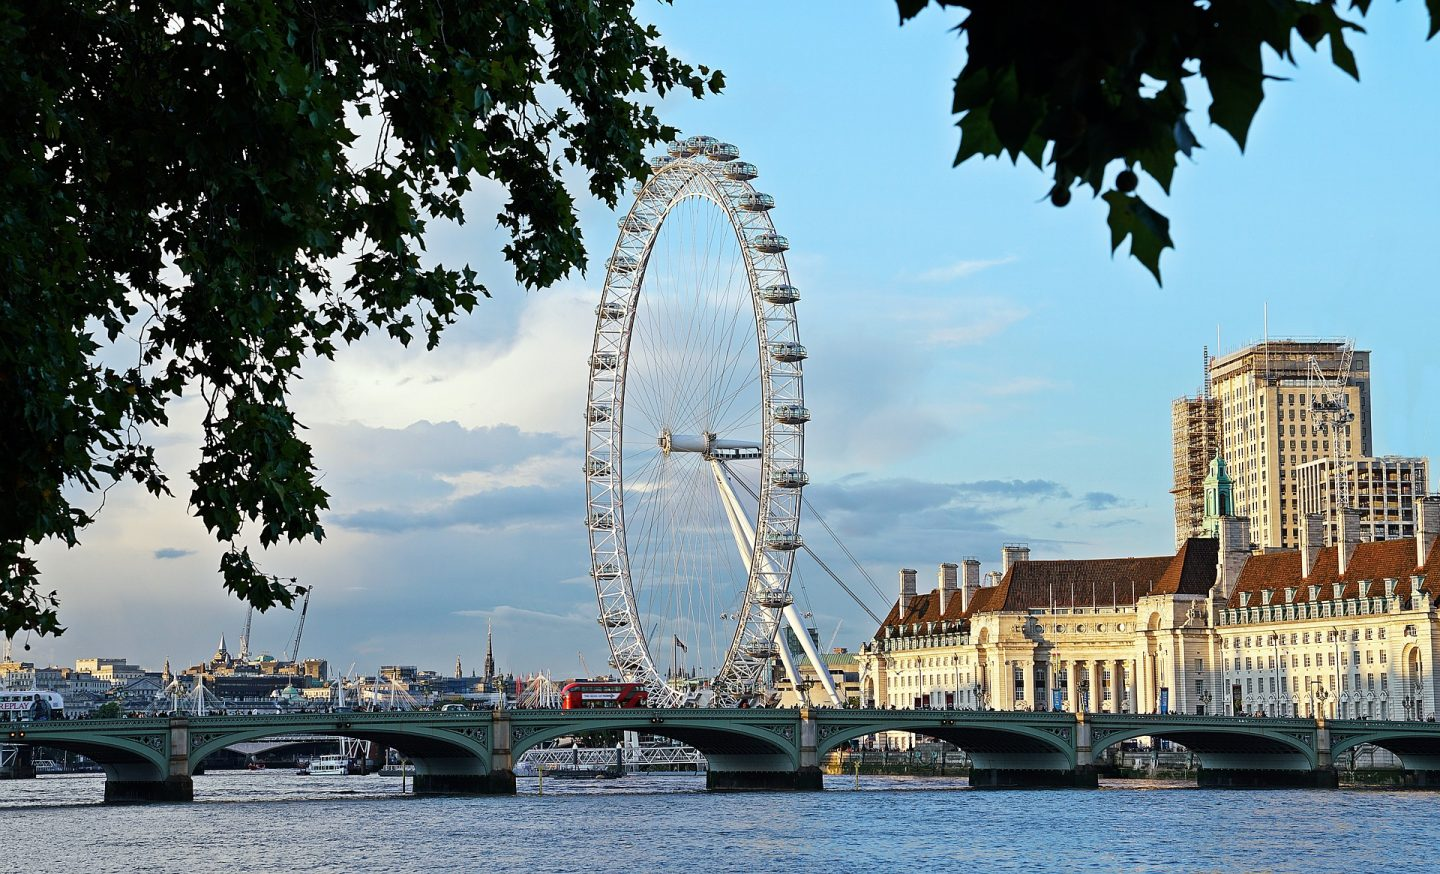 My London family days out wish list